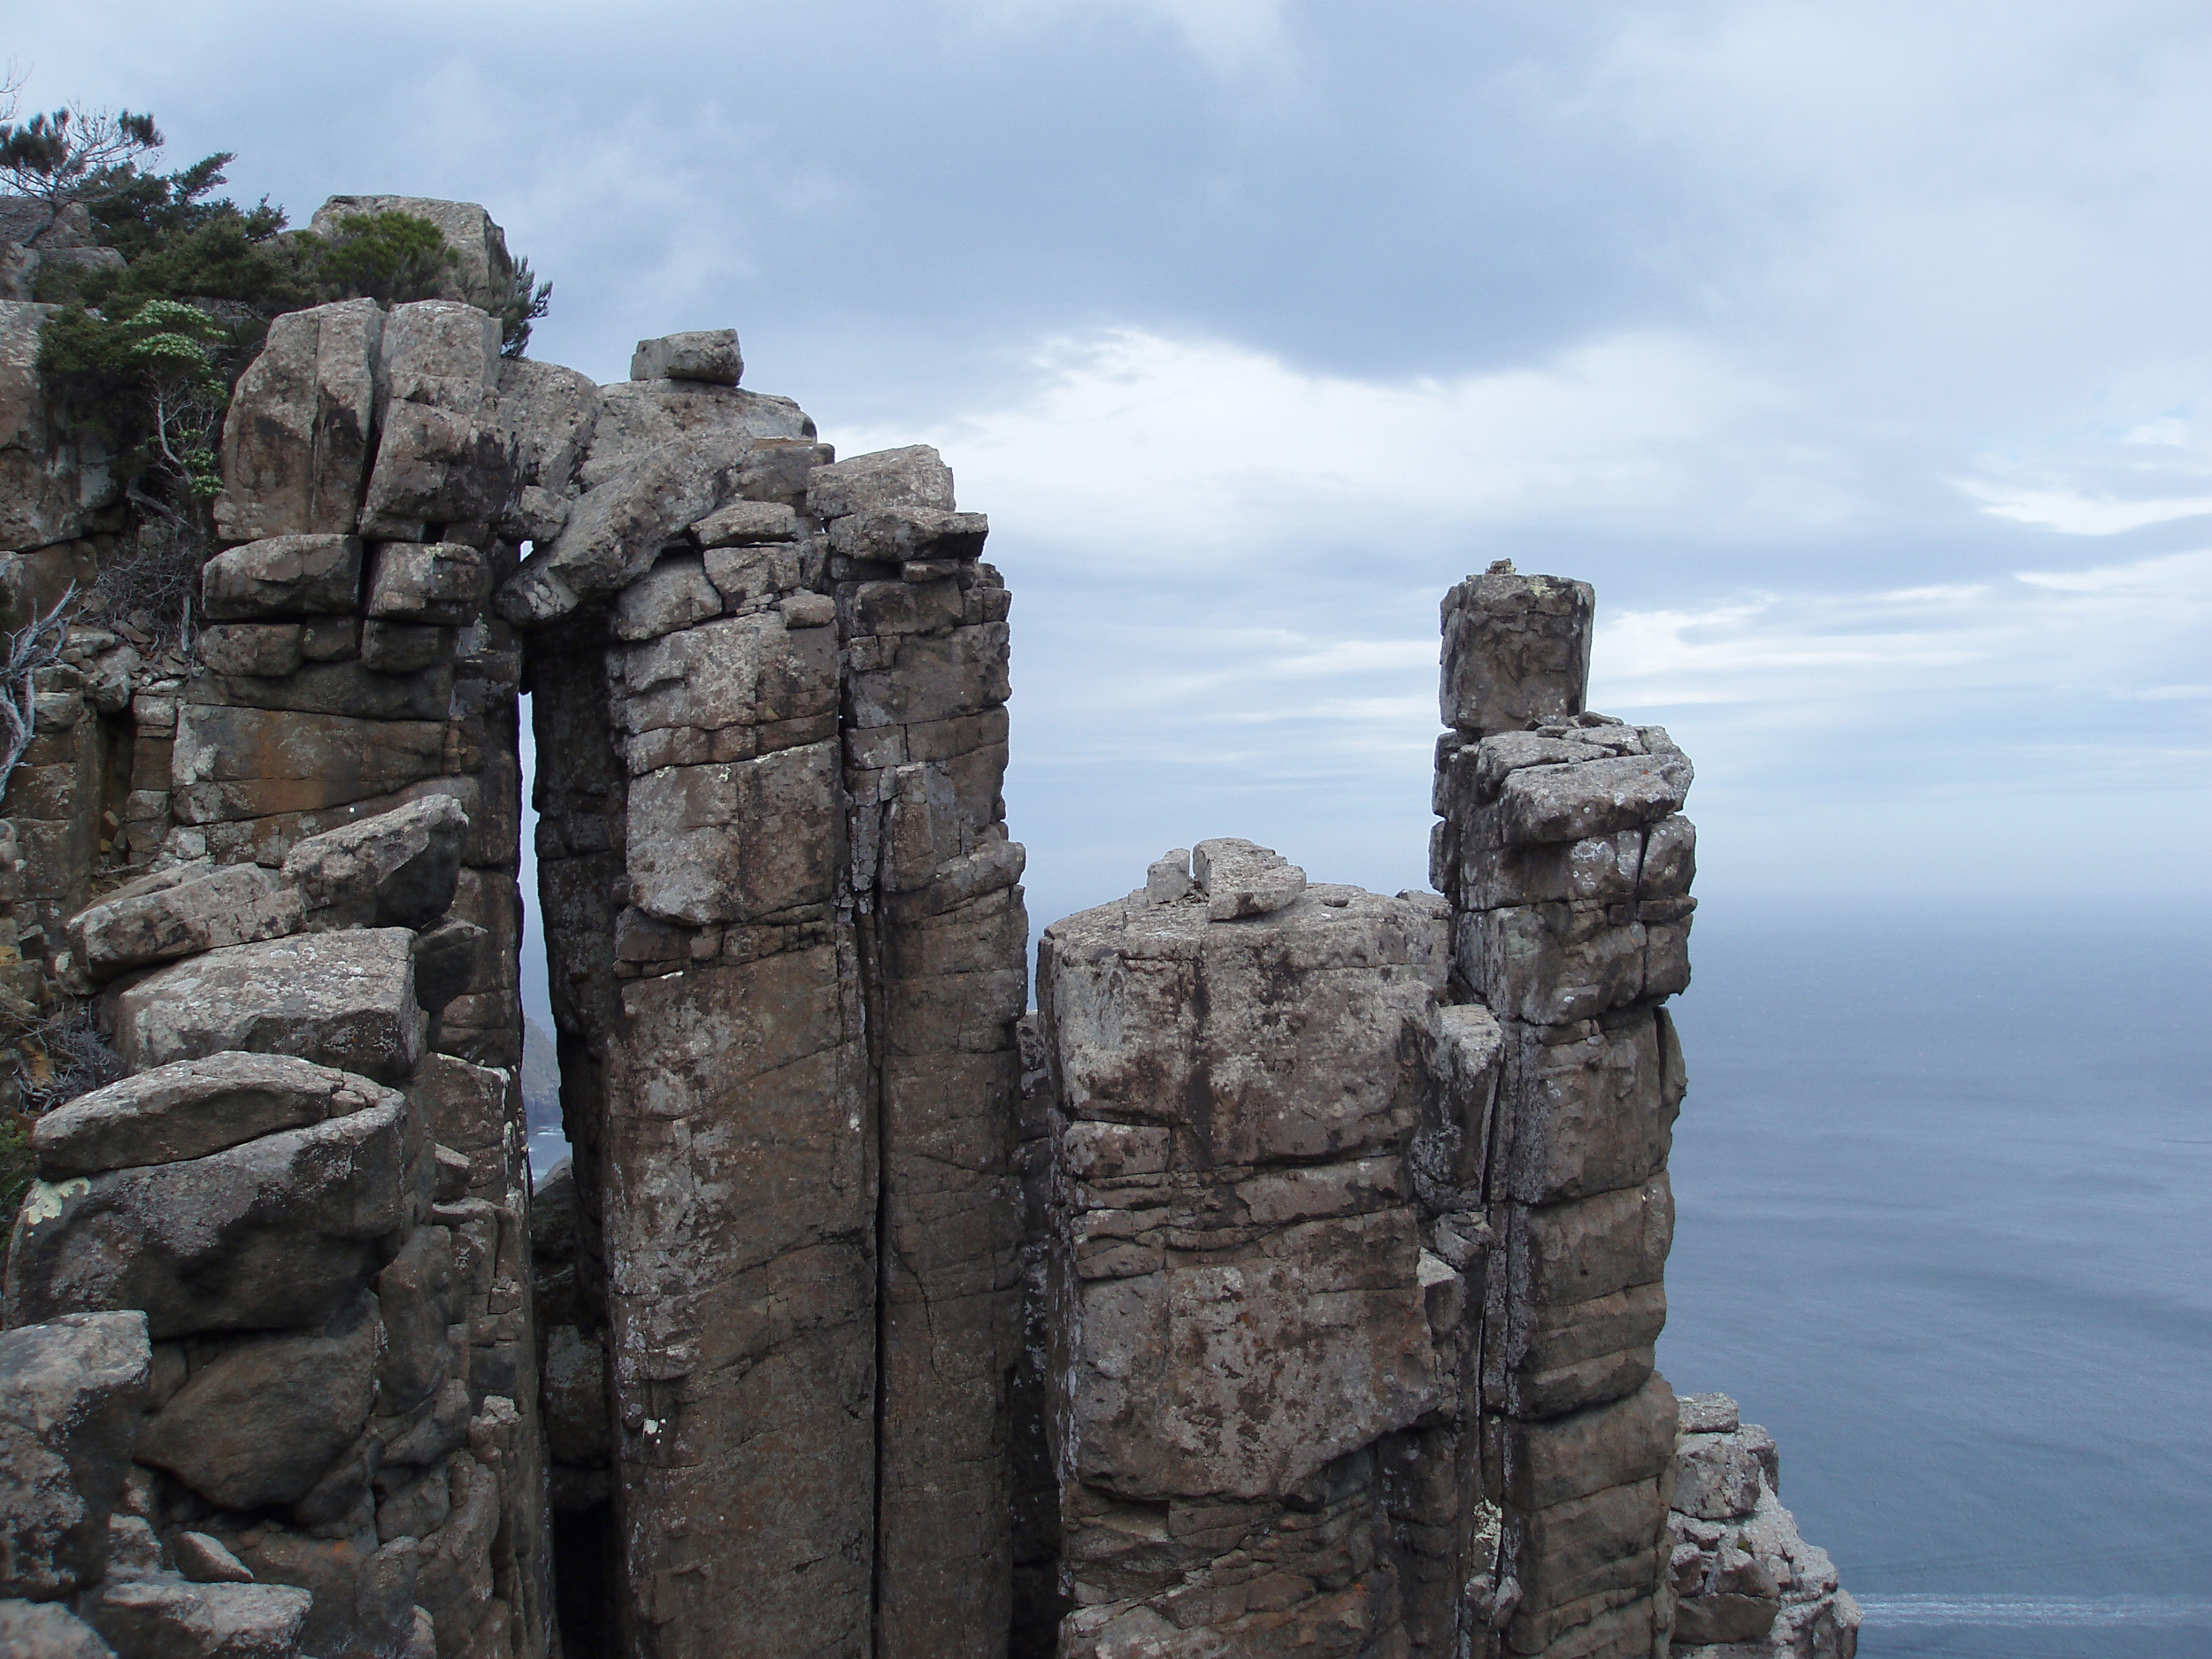 spectacular rocks formations with sheer vertical drops are a feature of the cliffs around cape pillar